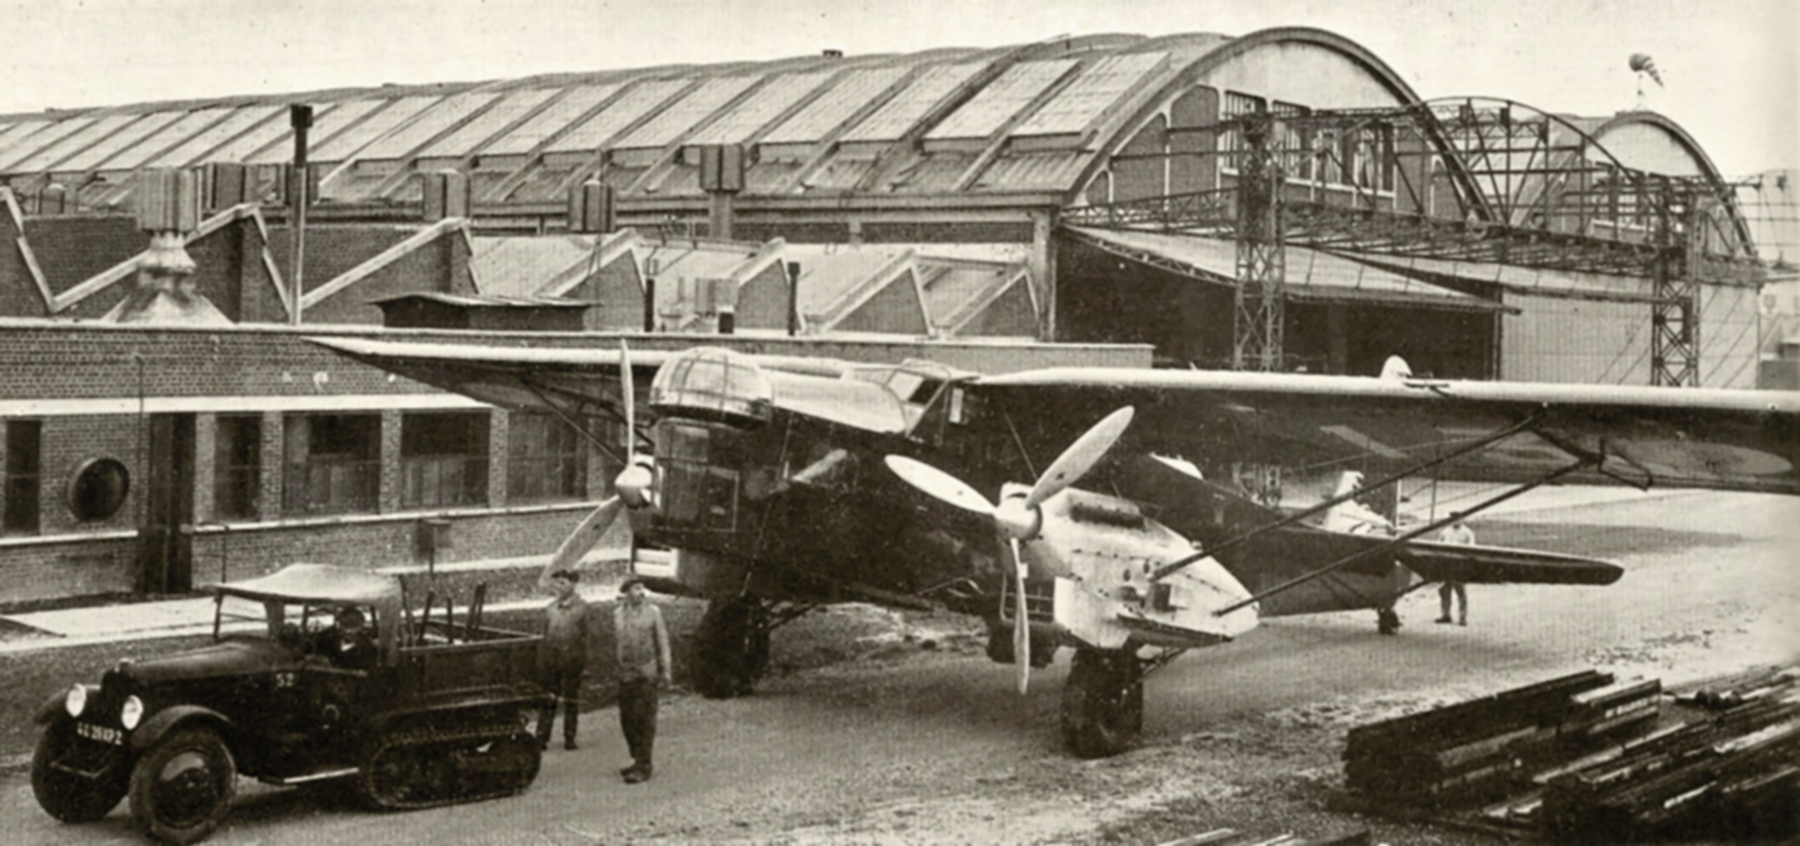 French Airforce Potez 540 at a French airbase France 1940 ebay 02